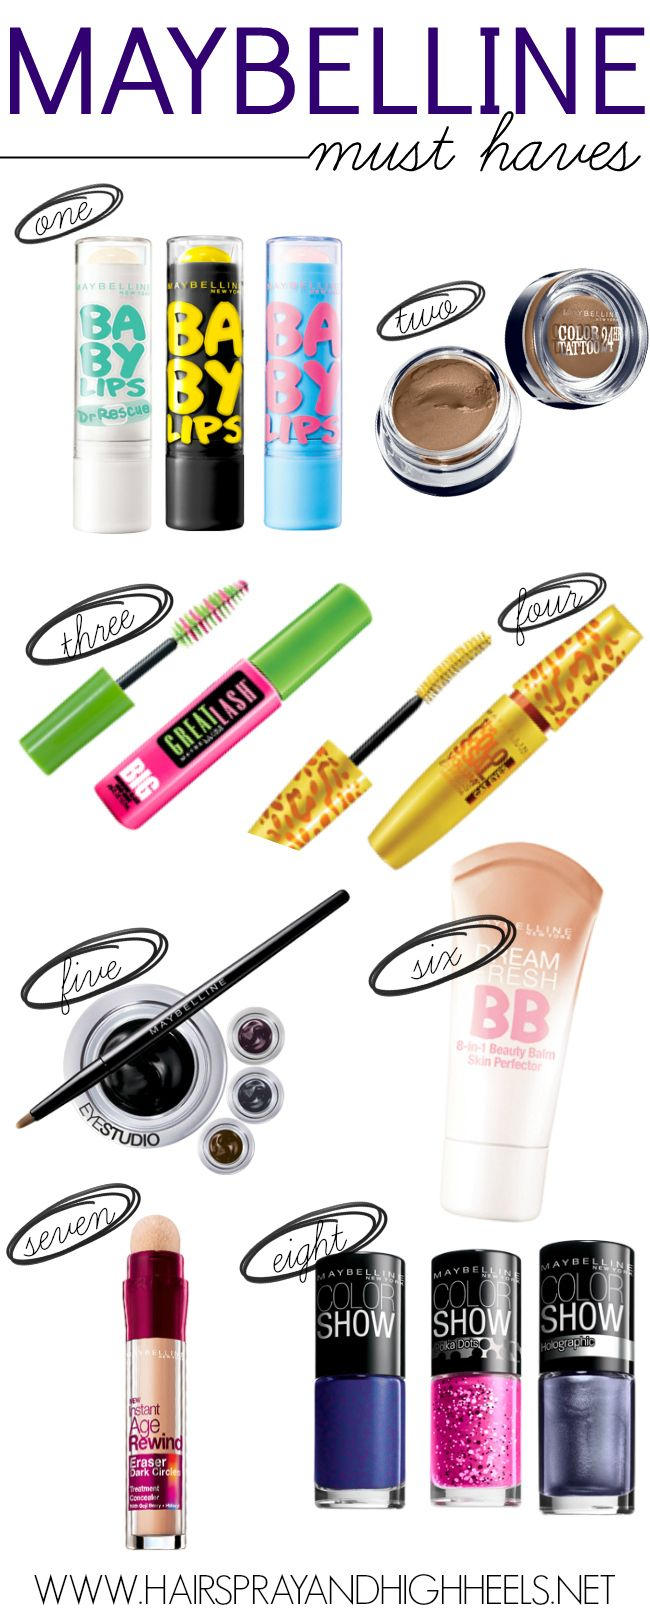 1-baby lips 2-color tatoo 3-great lash mascara 4-collasal mascara 5-gel eyeliner 6-dream fresh bb cream 7-age rewind dark cicle remover 8-show nail polish